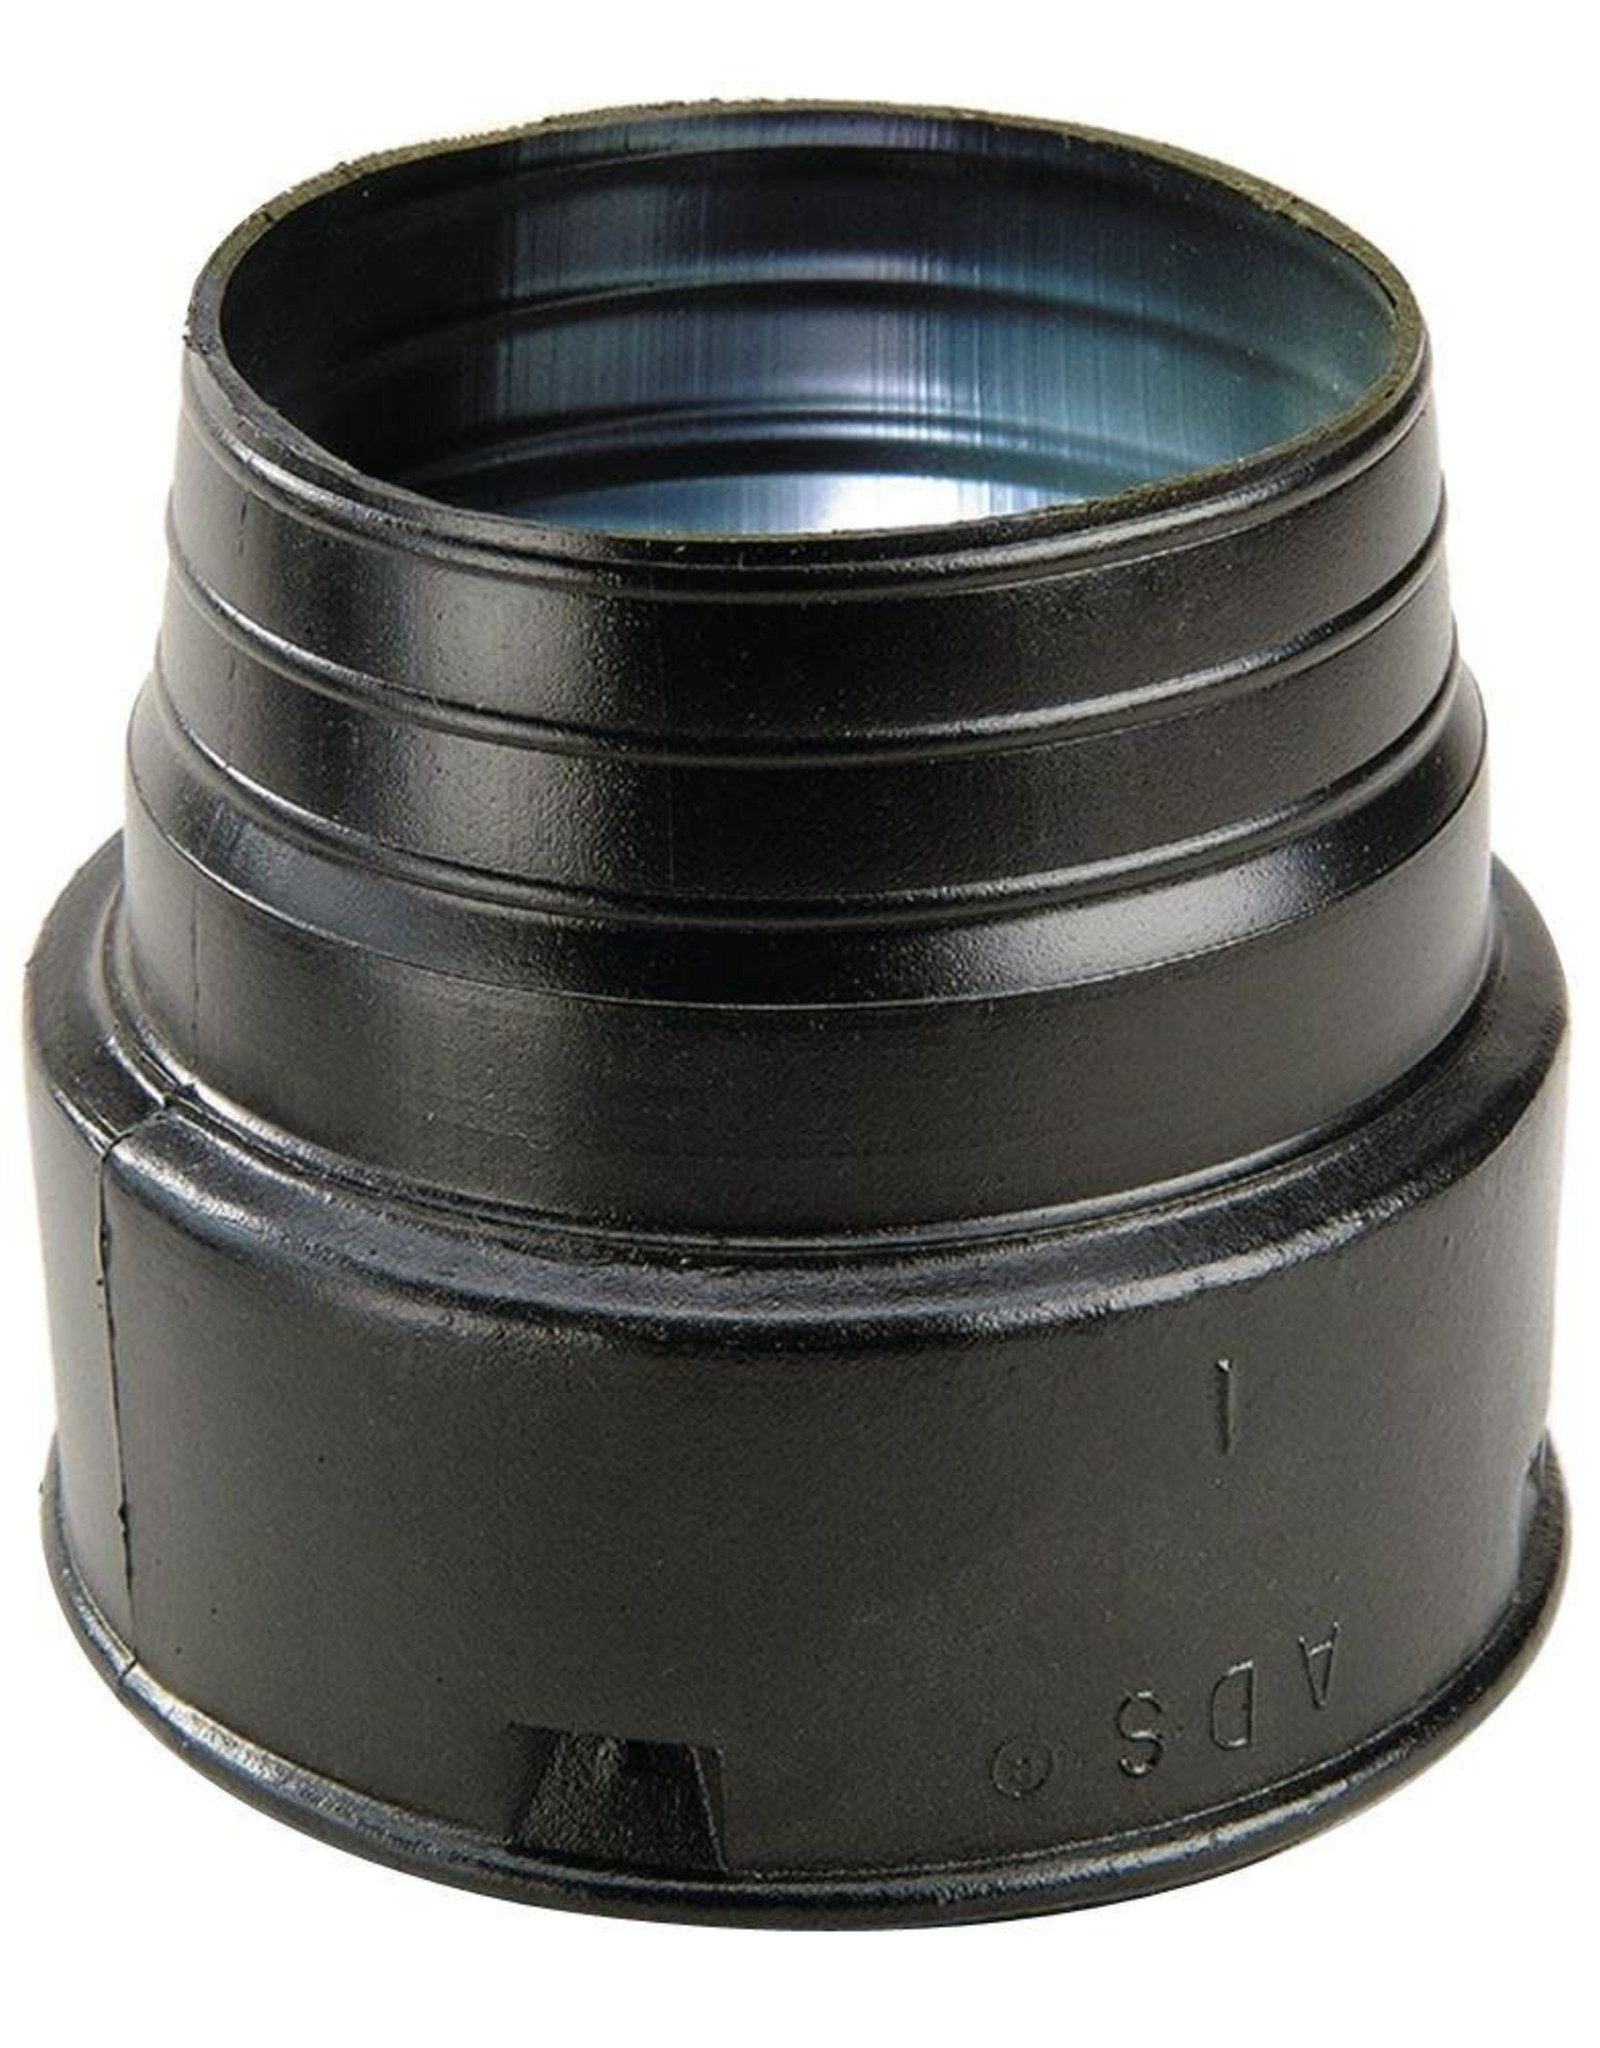 NDS Drainage NDS HDPE Corrugated Adapter Black 4 in. HUB x S&D SPT or HUB